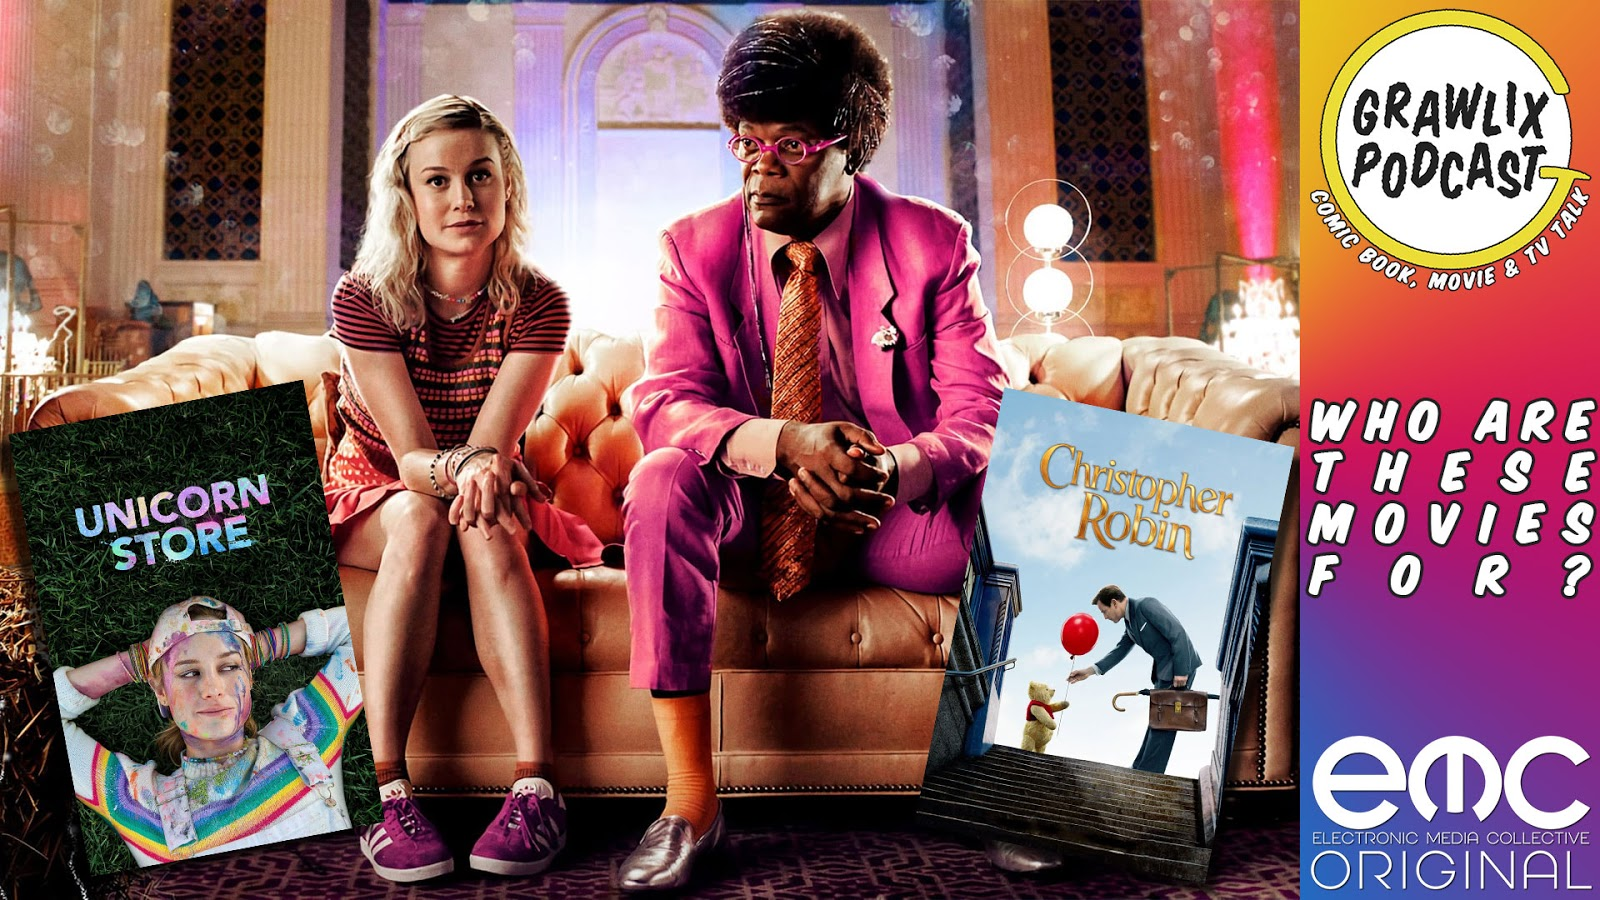 The Grawlix Podcast - Unicorn Store and Christopher Robin Reviews